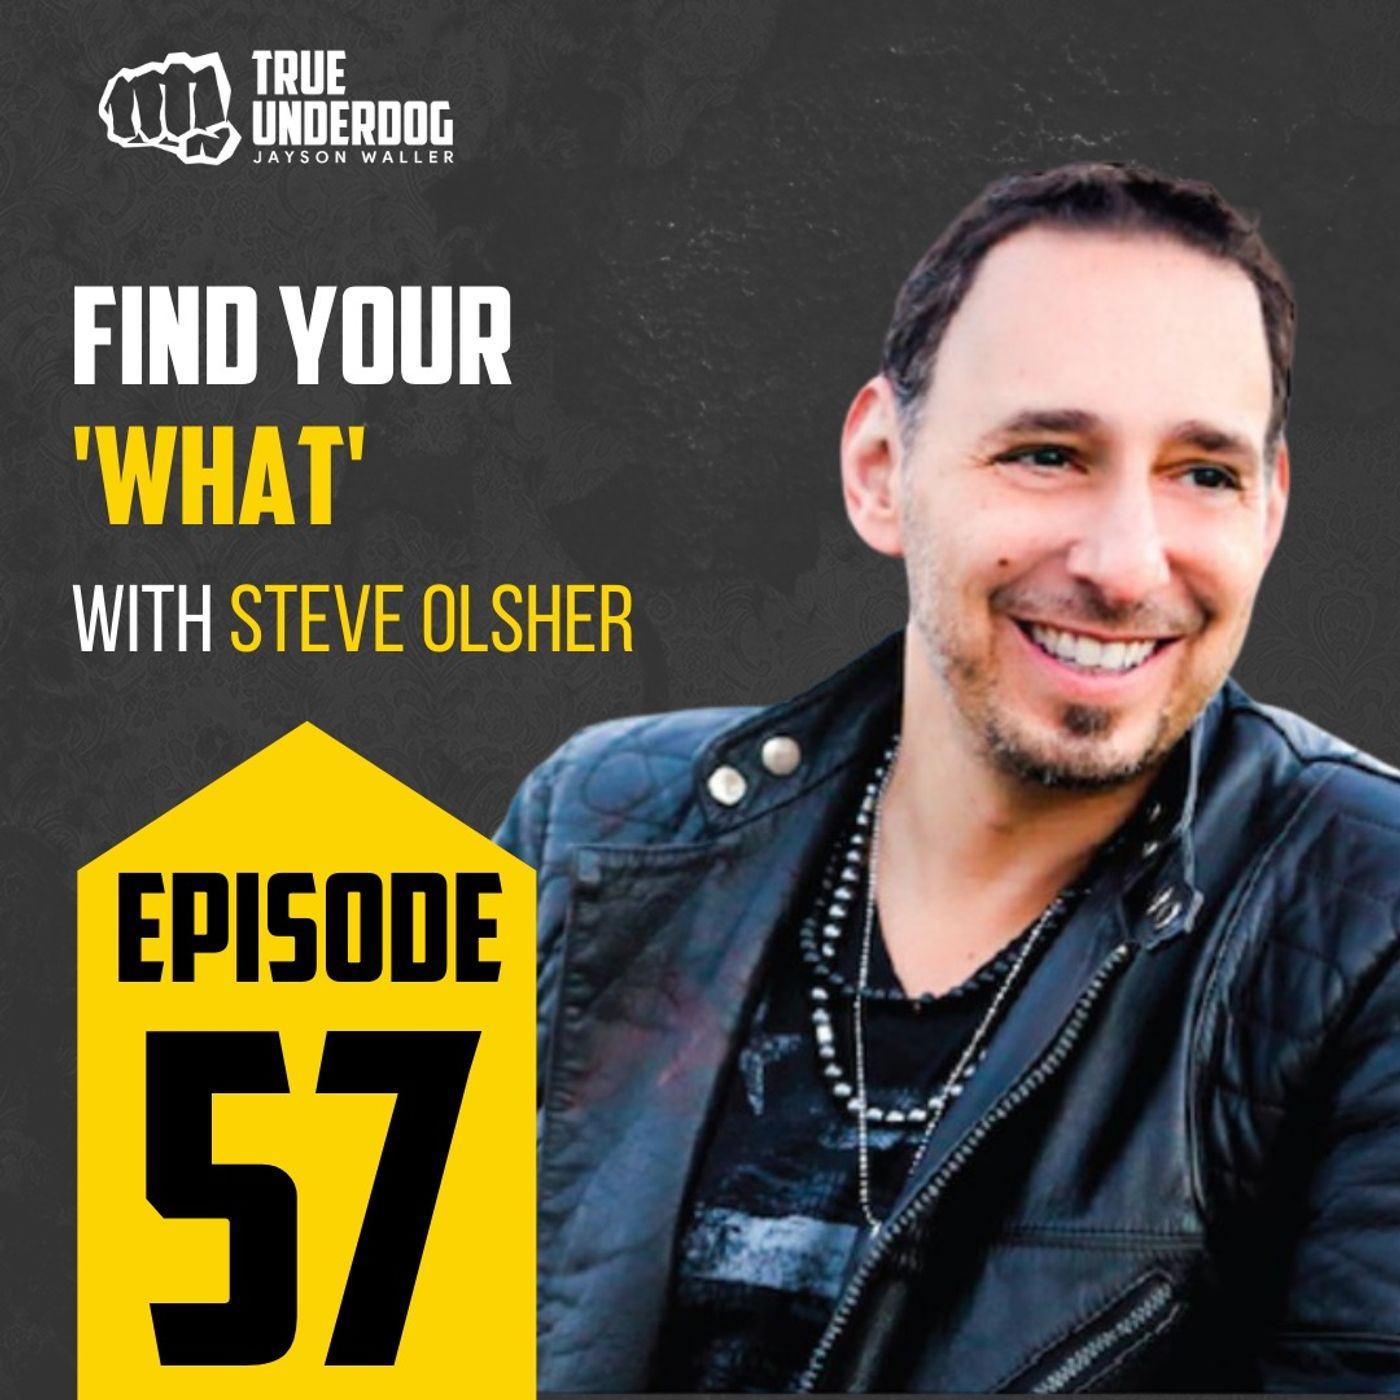 #57: Find Your 'What' with Steve Olsher